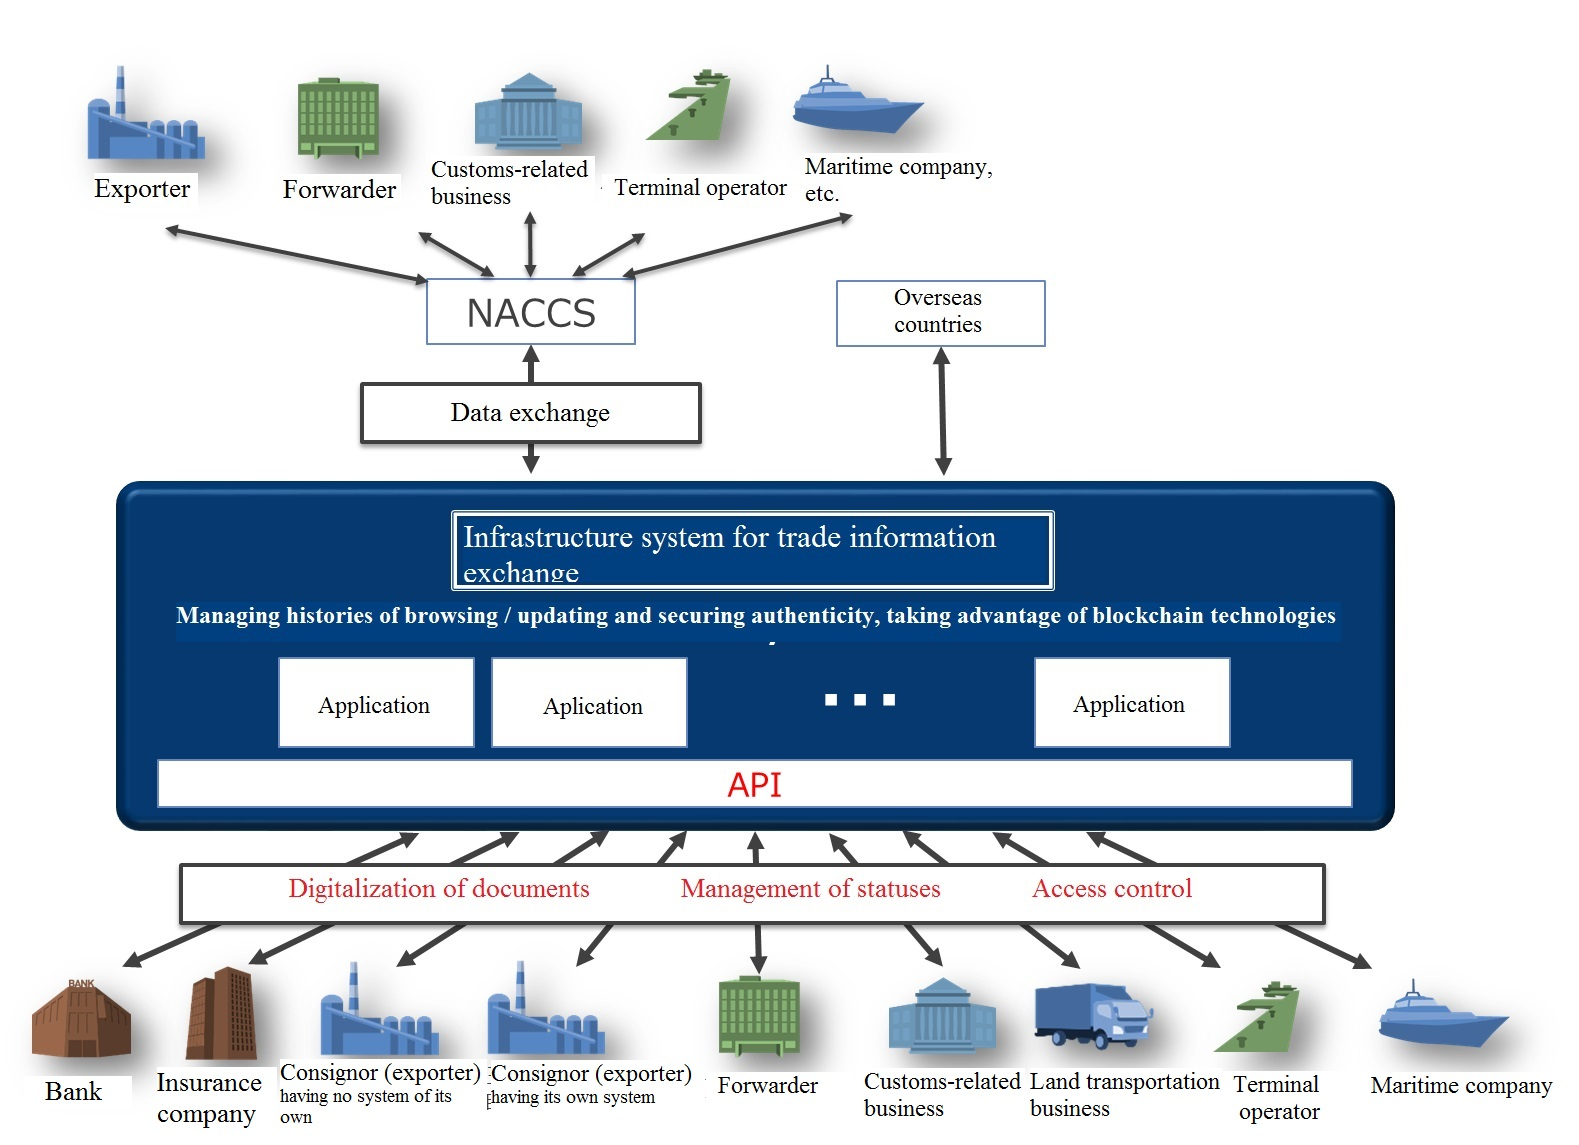 Overview of a new infrastructure system for trade information collaboration